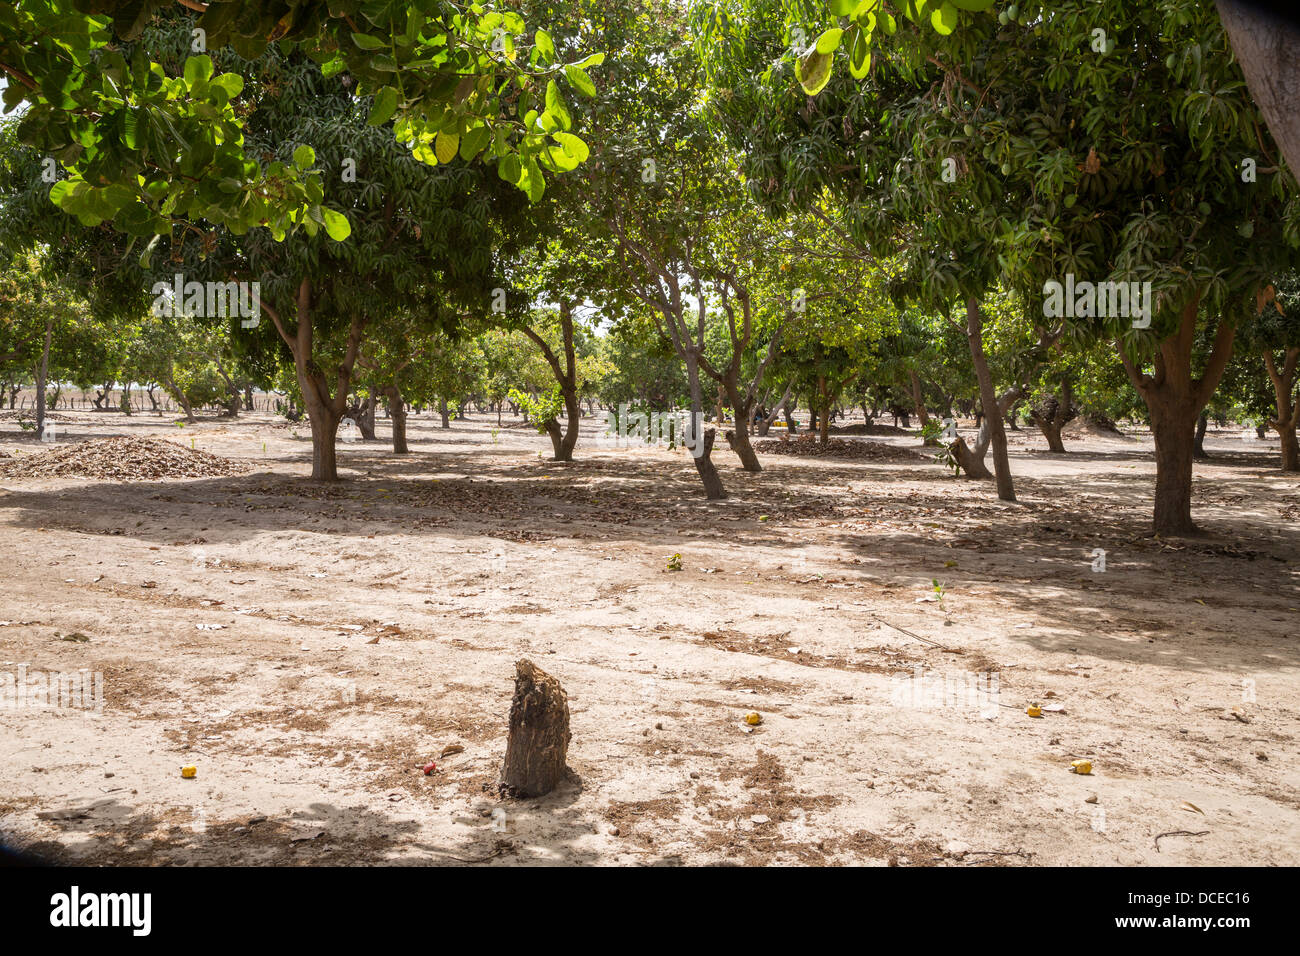 Cashew Nut Farm, Senegal. Example of a Well-tended Farm, free of underbrush and trees with lower branches pruned - Stock Image